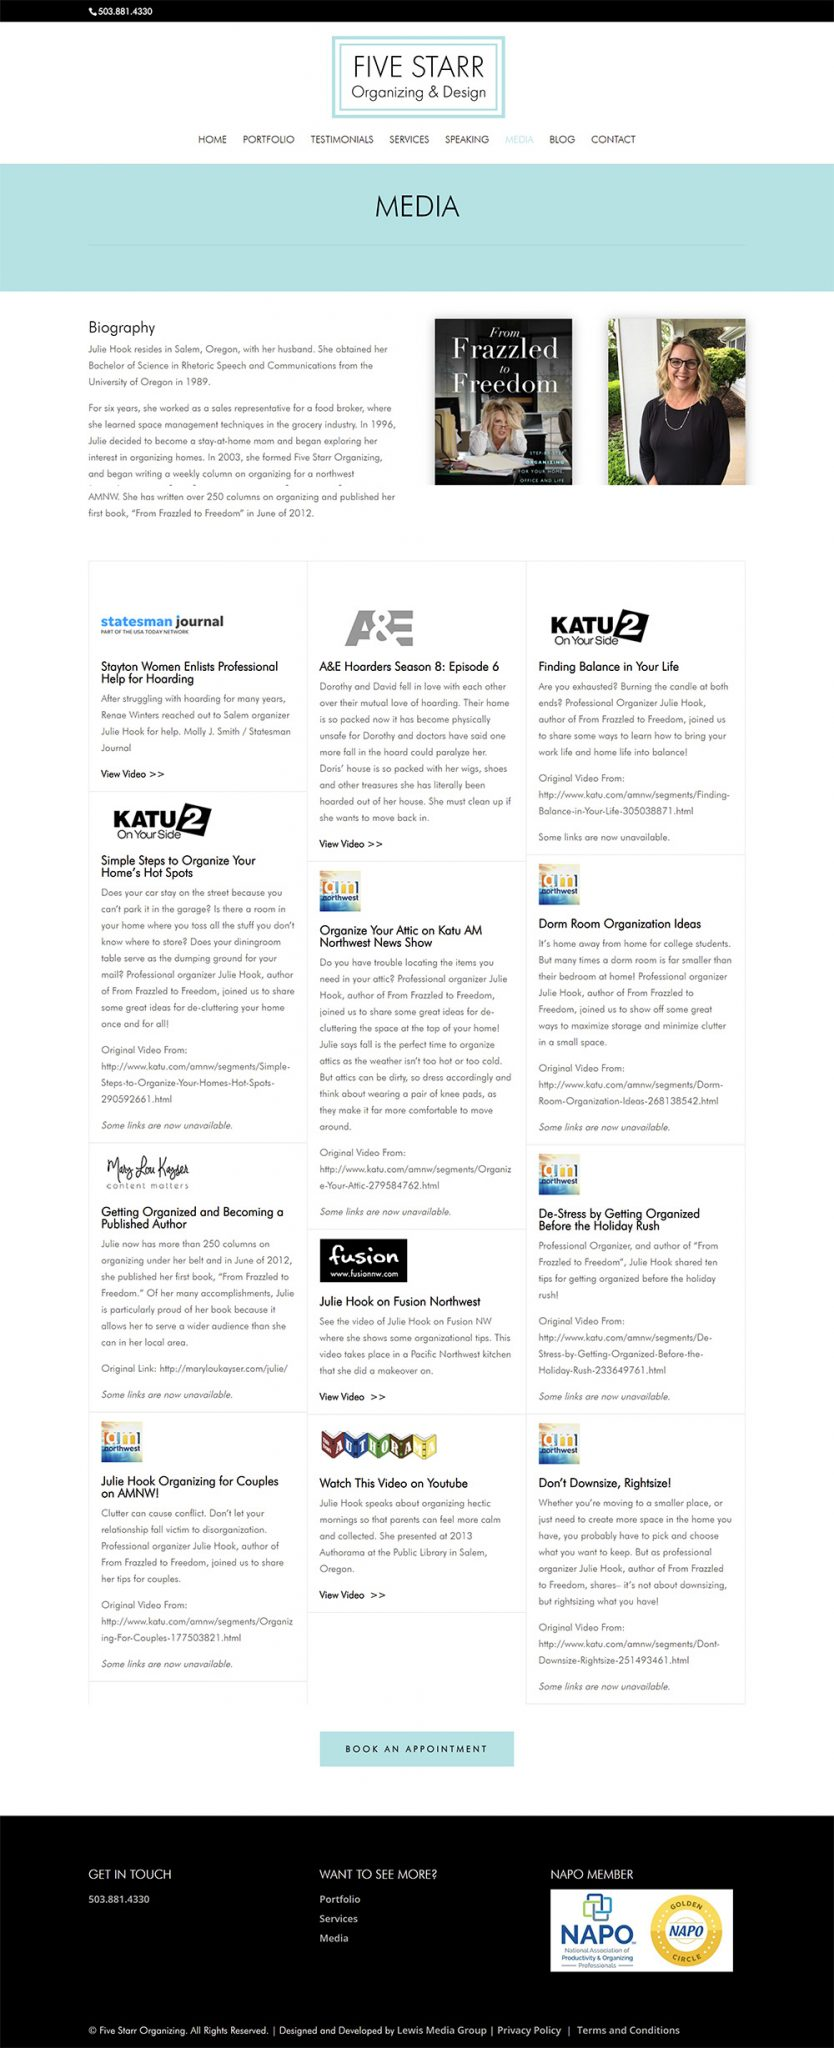 Five Starr Organizing & Design media page after redesign